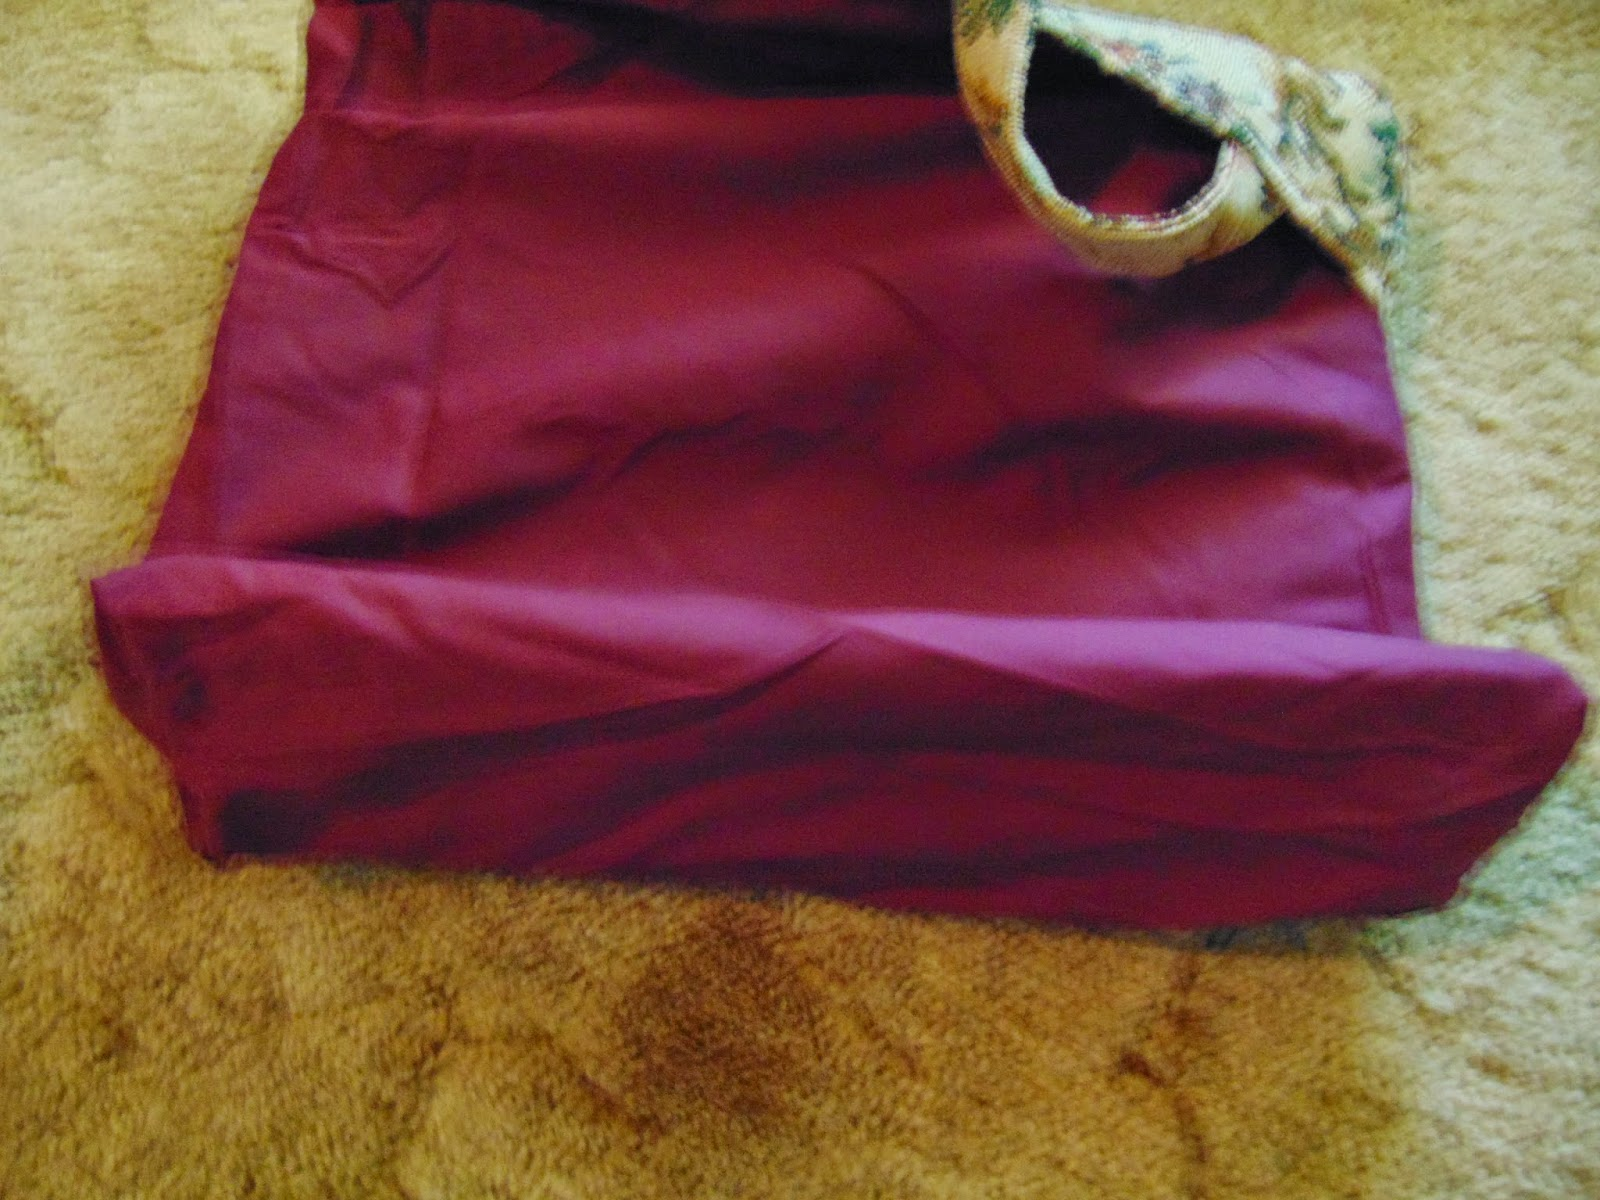 burgundy lining fabric shows inside of tote bag